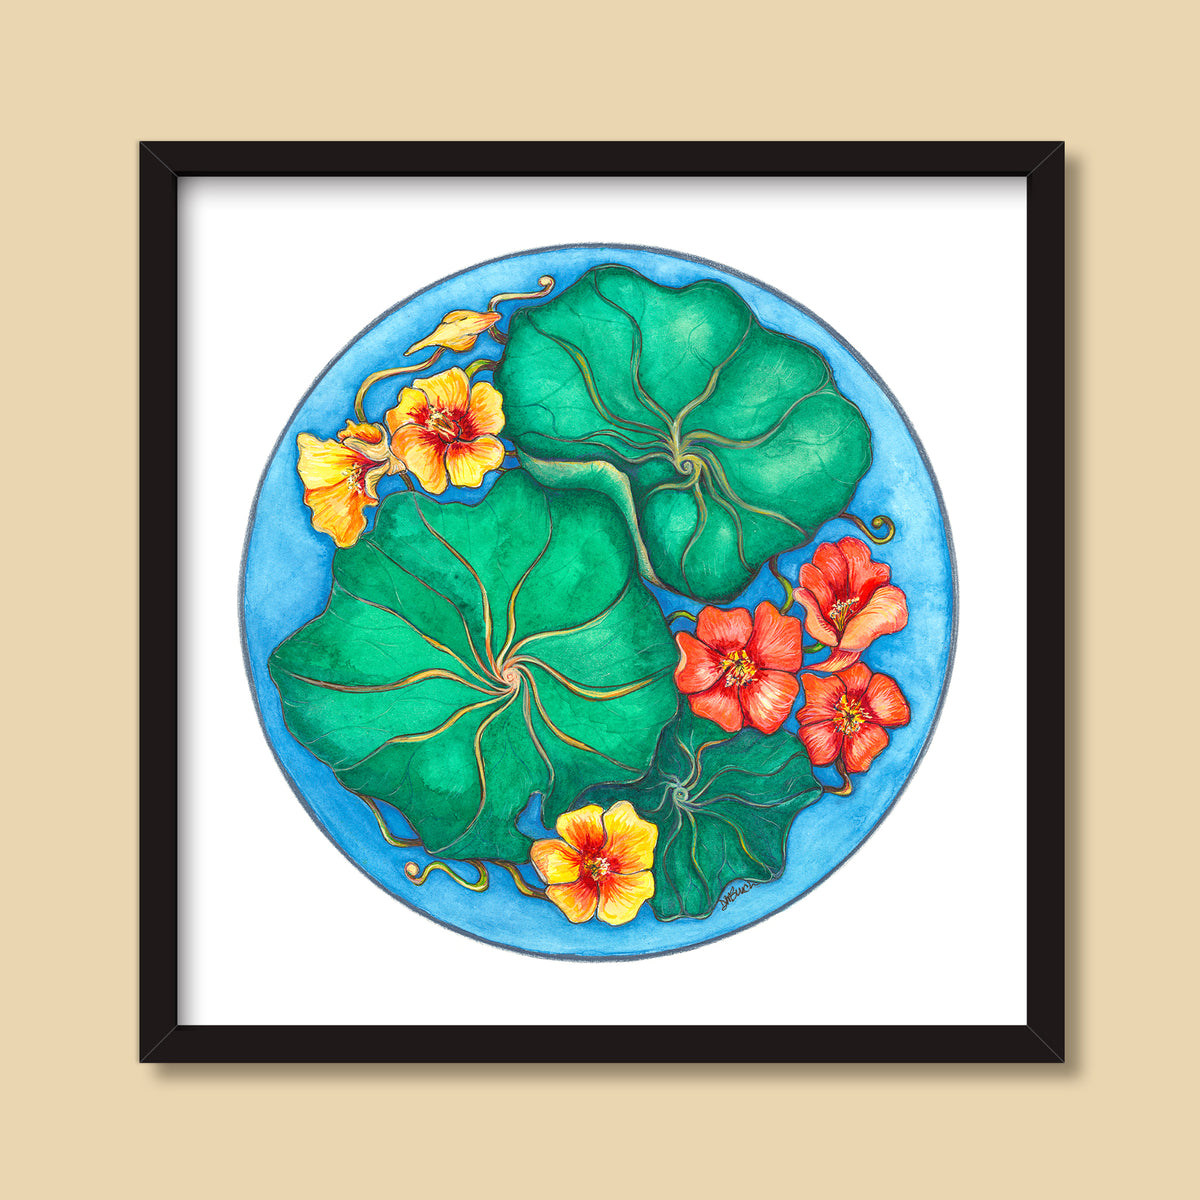 Nasturtiums | Mixed Media Painting by Denise Marta-Burch